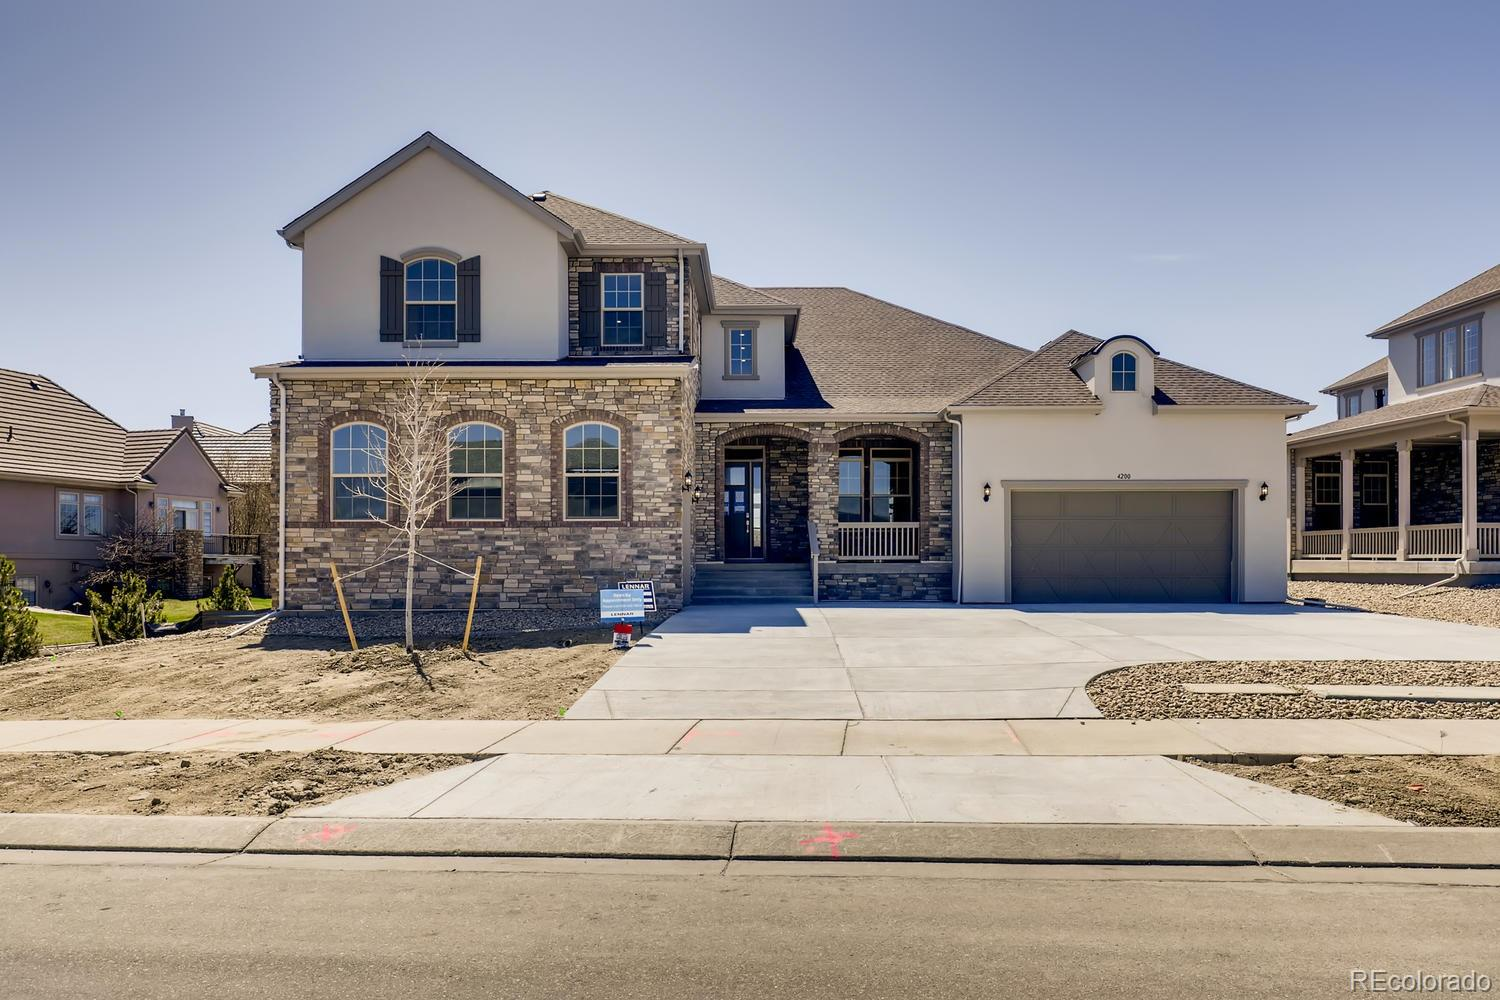 """Available March 2020!  The gorgeous new Chandler 2 story features 4 beds (main floor master), 3.5 baths, great room, main floor guest suite living & bedroom, kitchen, dining room, study, main floor laundry, loft, full unfinished basement for future expansion and a 2 + 1 car garages.  Beautiful finishes throughout.  Appliances include 42"""" professional built-in refrigerator & dispenser, dual ovens, dual dishwashers, 5 burner gas cooktop, wine cooler & microwave. This home has been thoughtfully designed to incorporate the latest in modern conveniences, technology and luxury - comfortable elegance.  Located on a spacious lot and backing to open space with some mountain views.  Come see why time and gain, this builder stands above the rest.  You will not be disappointed. Floor plan and room sizes subject to change. Design selections are completed."""